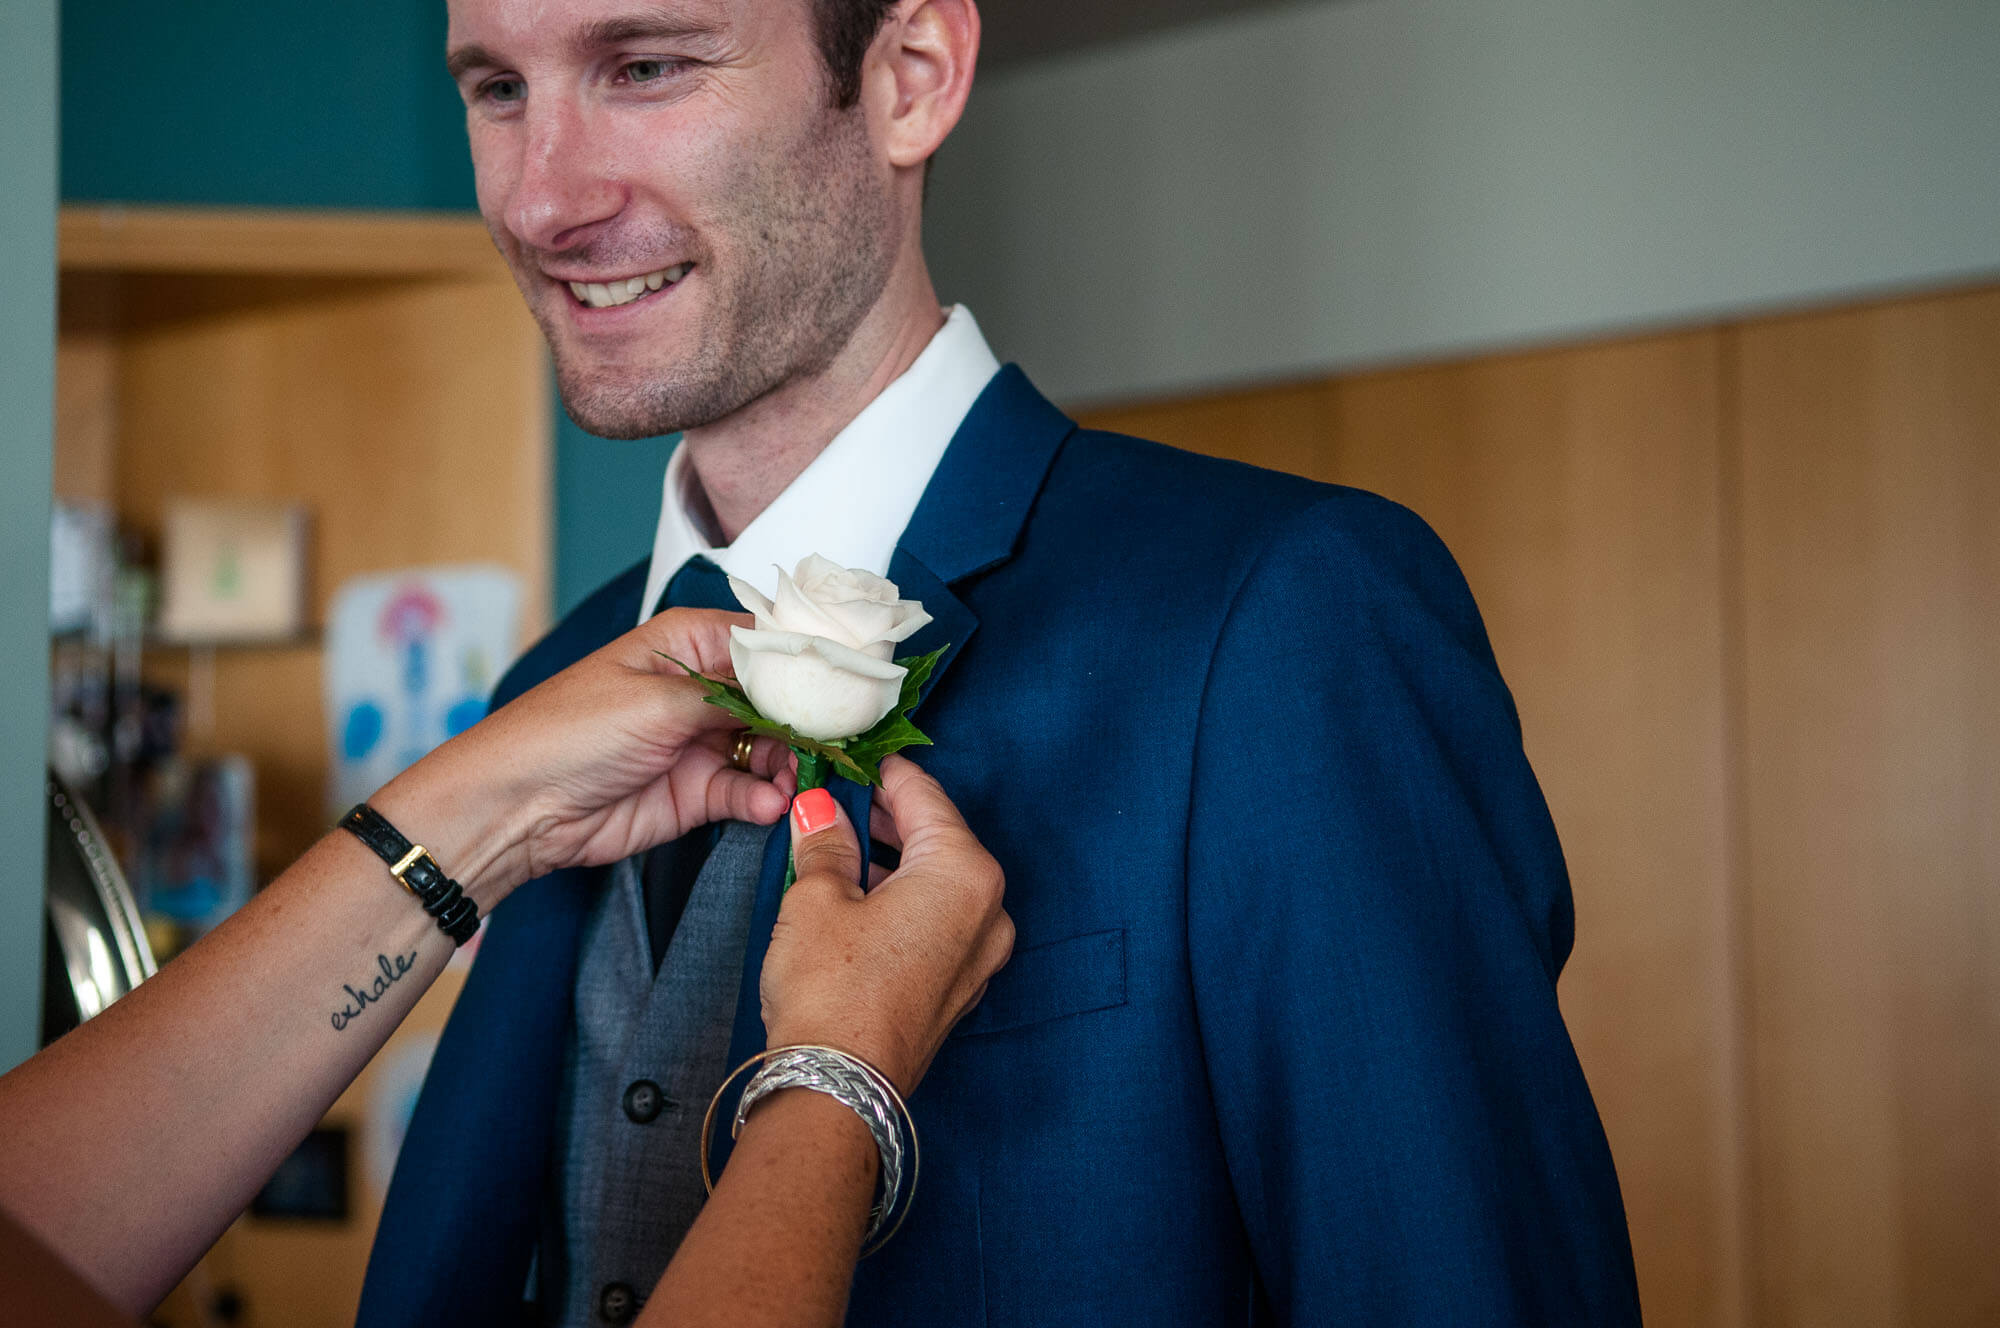 lady-with-tattoo-adjusts-grooms-buttonhole.jpg